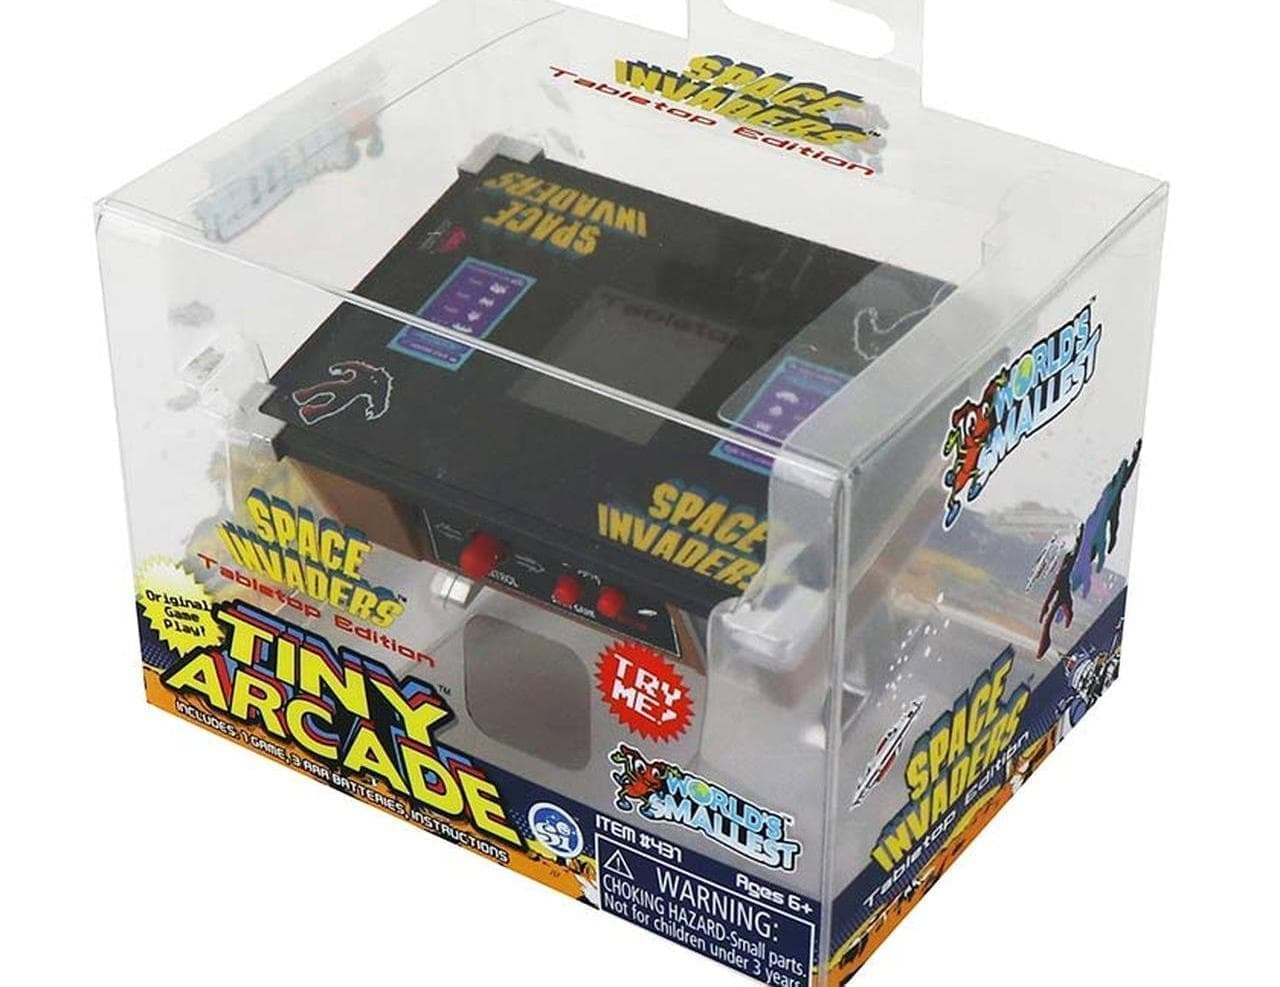 世界最小のスペースインベーダー「Space Invaders Tiny Arcade Tabletop Edition」